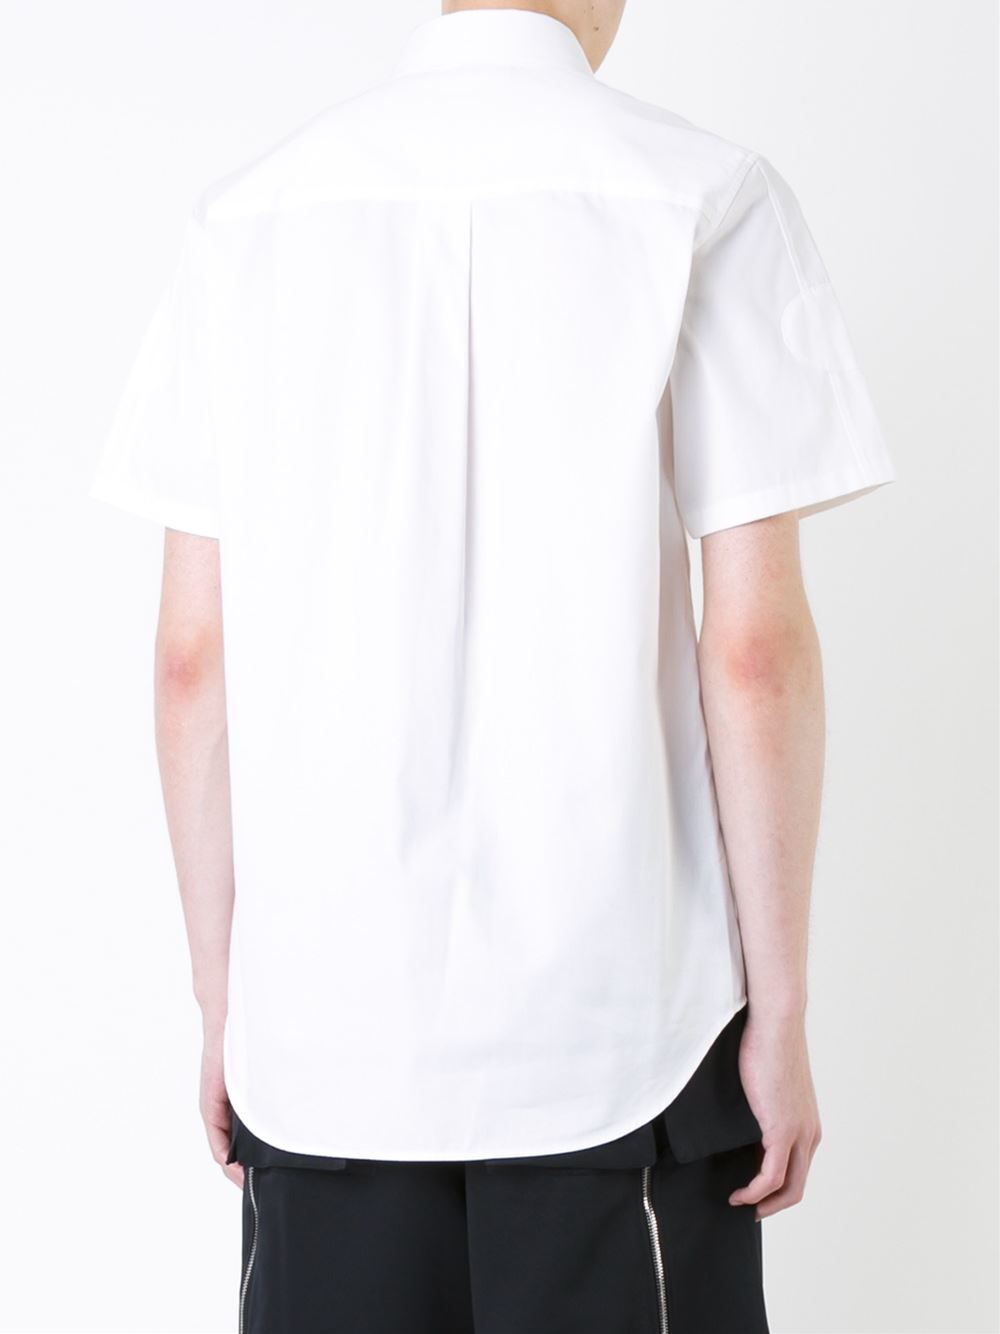 Alexander Wang Cutaway Collar Shirt In White For Men Lyst